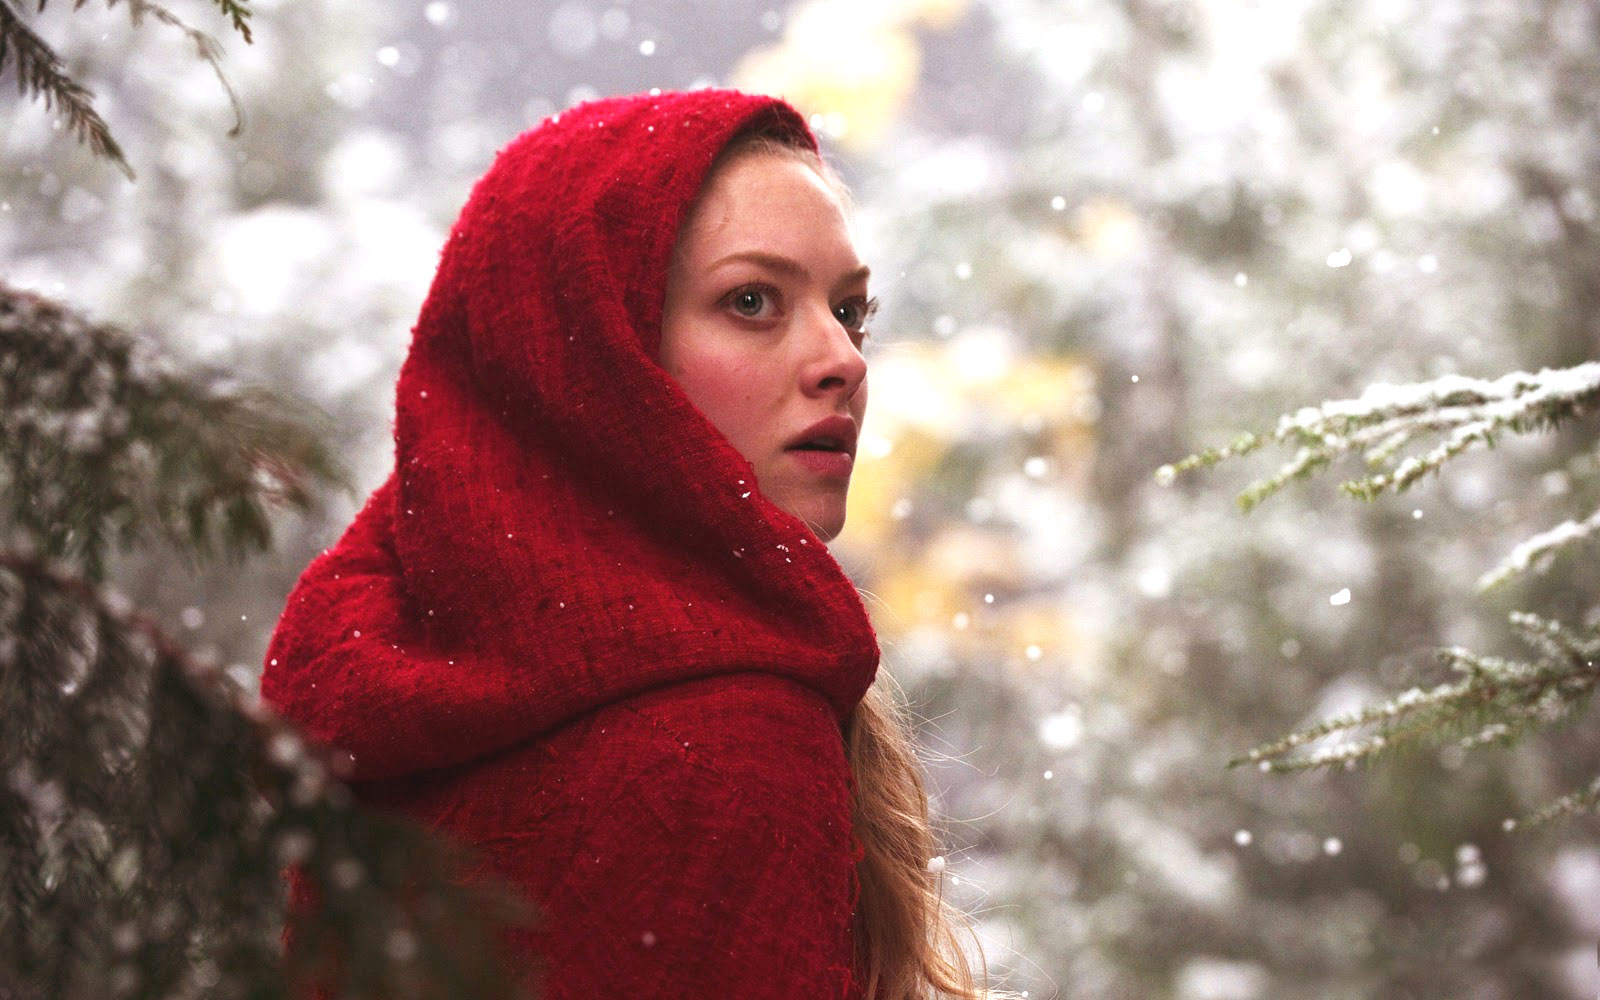 Amanda Seyfried&#8217;s Red Riding Hood Cape go on Sale